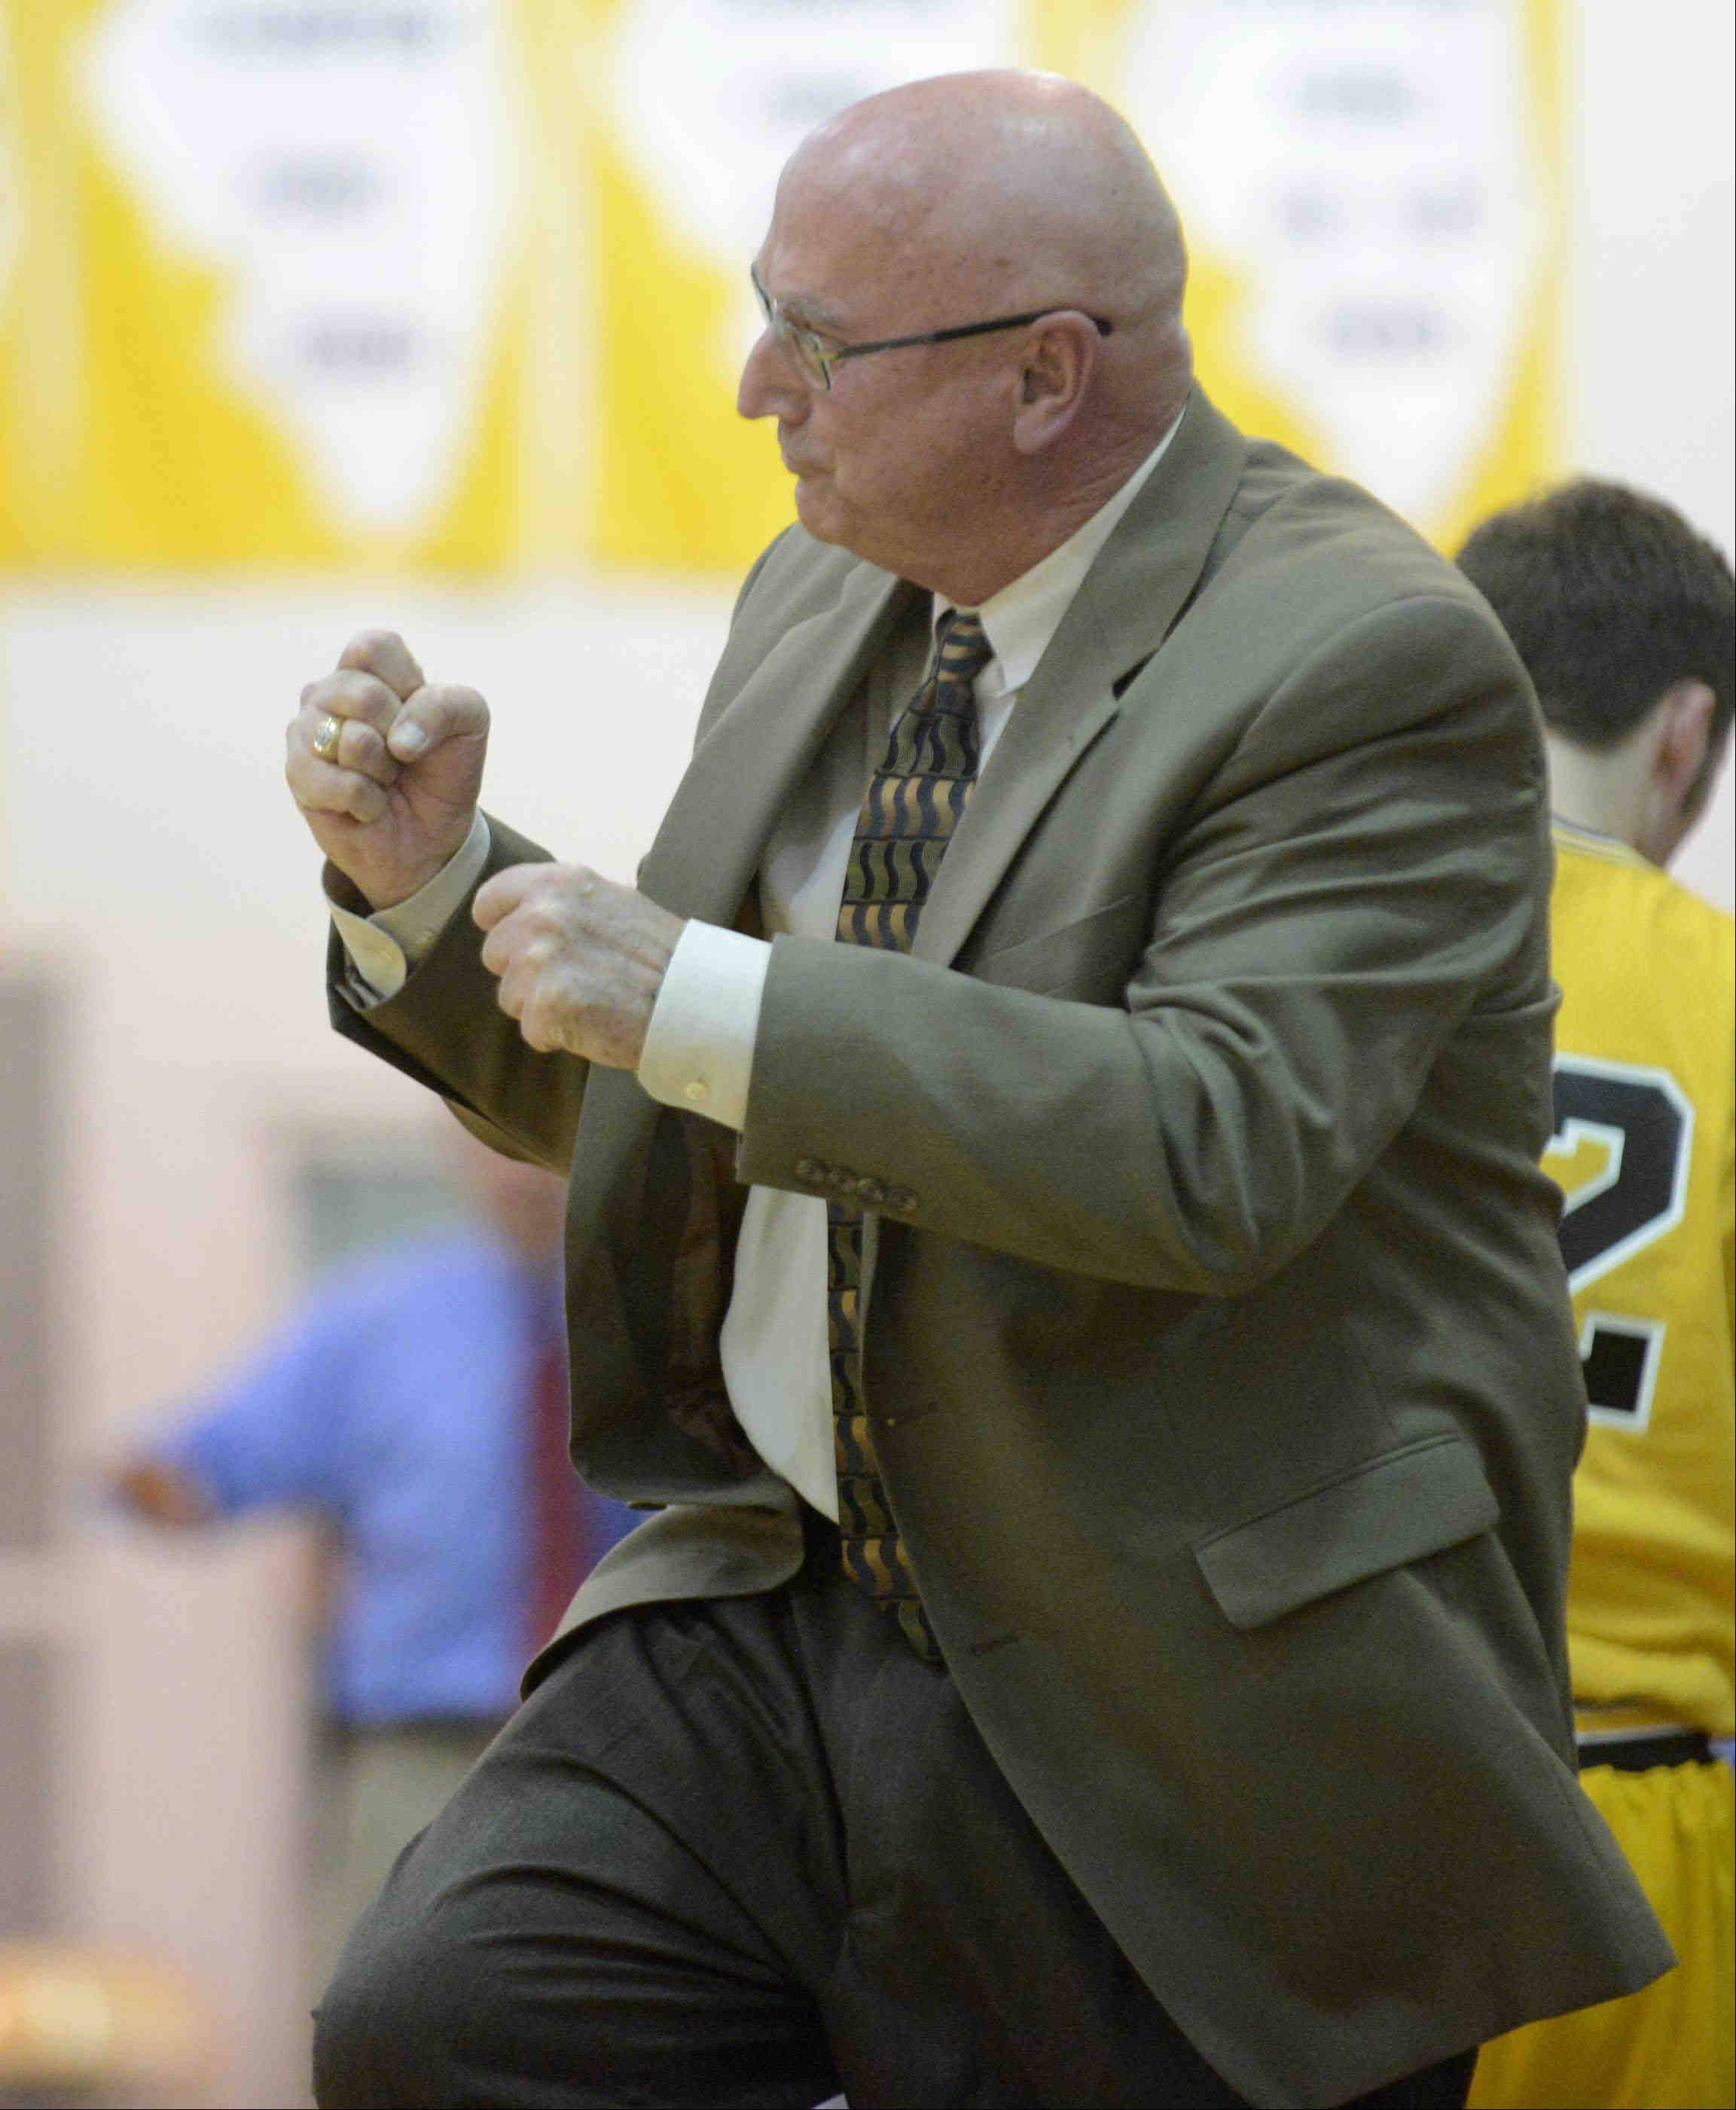 Jacobs head coach Jim Hinkle reacts near the end of his team's 50-45 win over Dundee-Crown in the Class 4A Jacobs Class 4A regional semifinal Wednesday. The win puts the Golden Eagles and the retiring Hinkle into Friday's championship game against Crystal Lake Central.